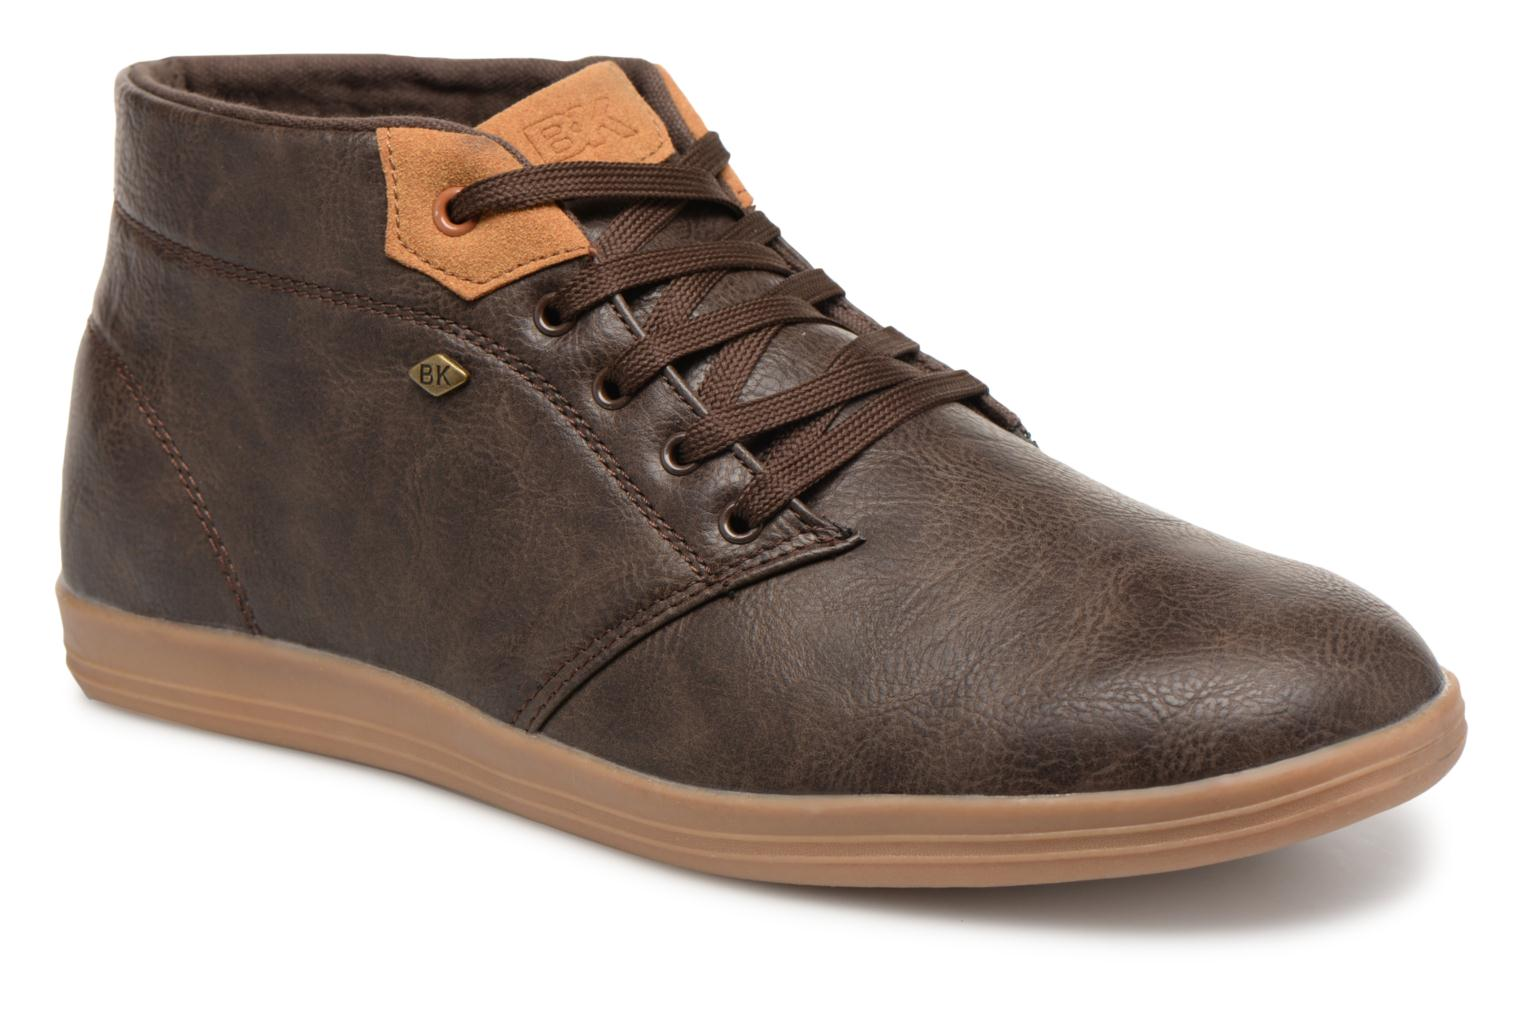 Sneakers Copal mid by British Knights